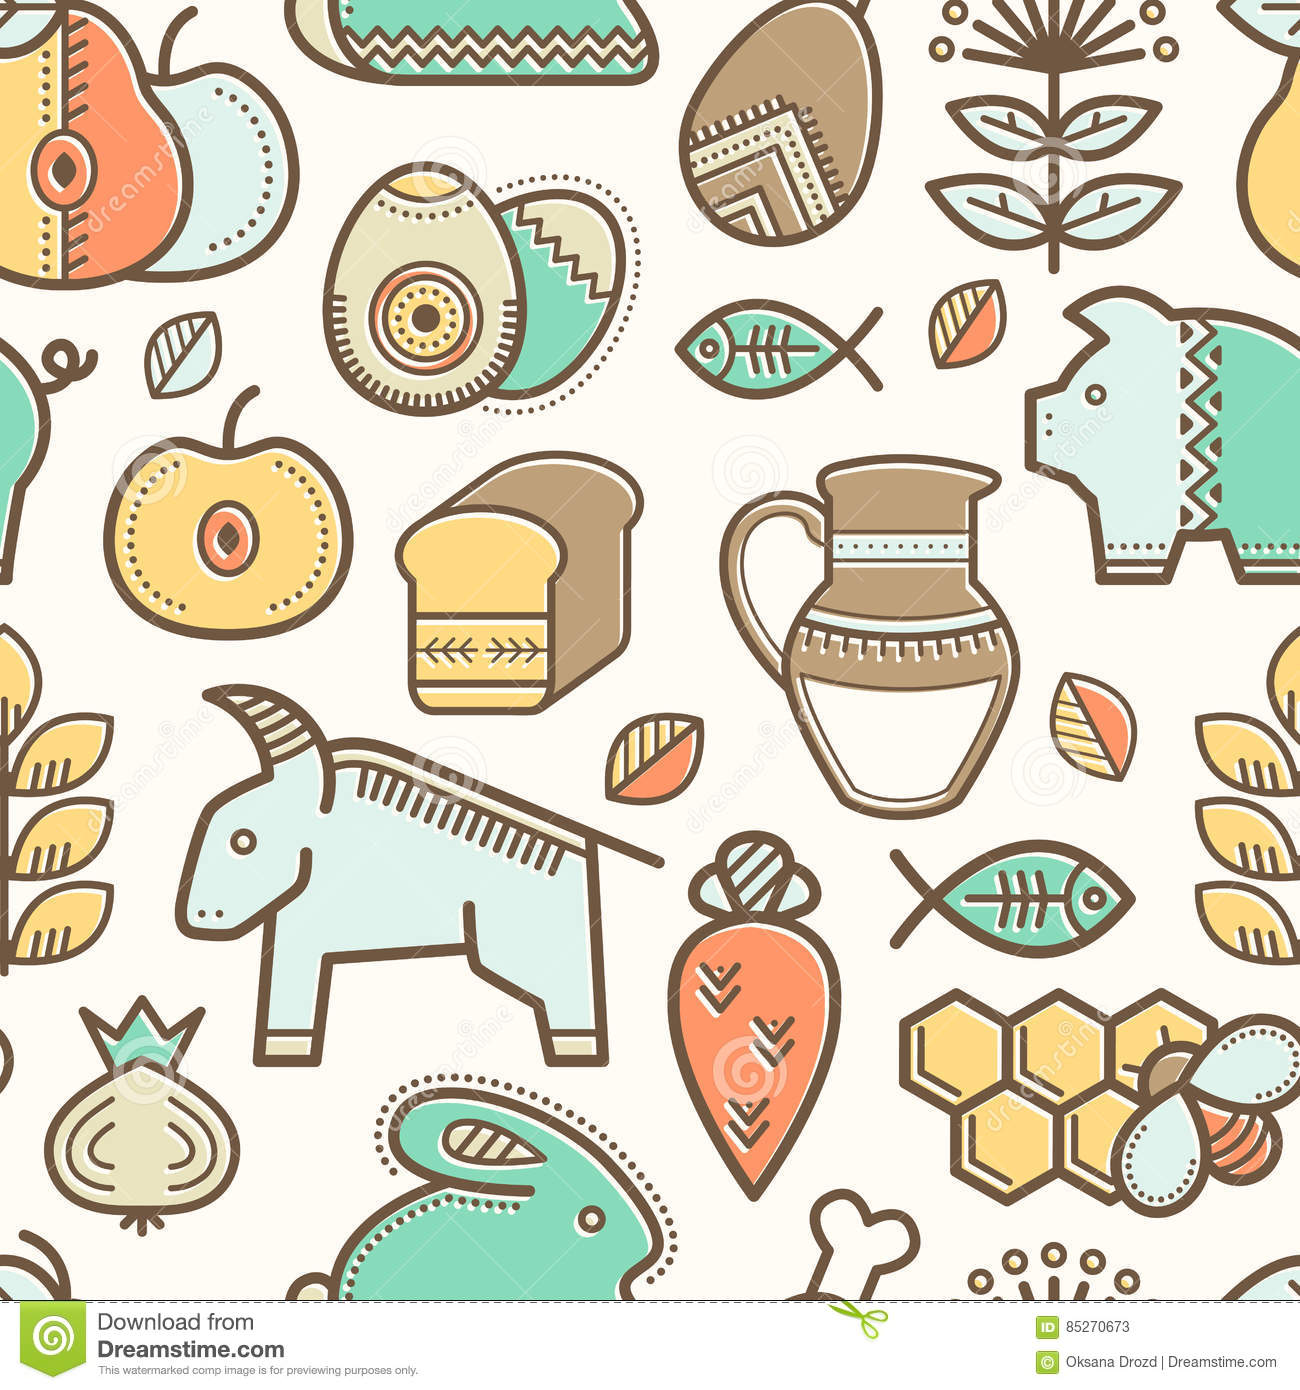 Seamless pattern with outlined food signs